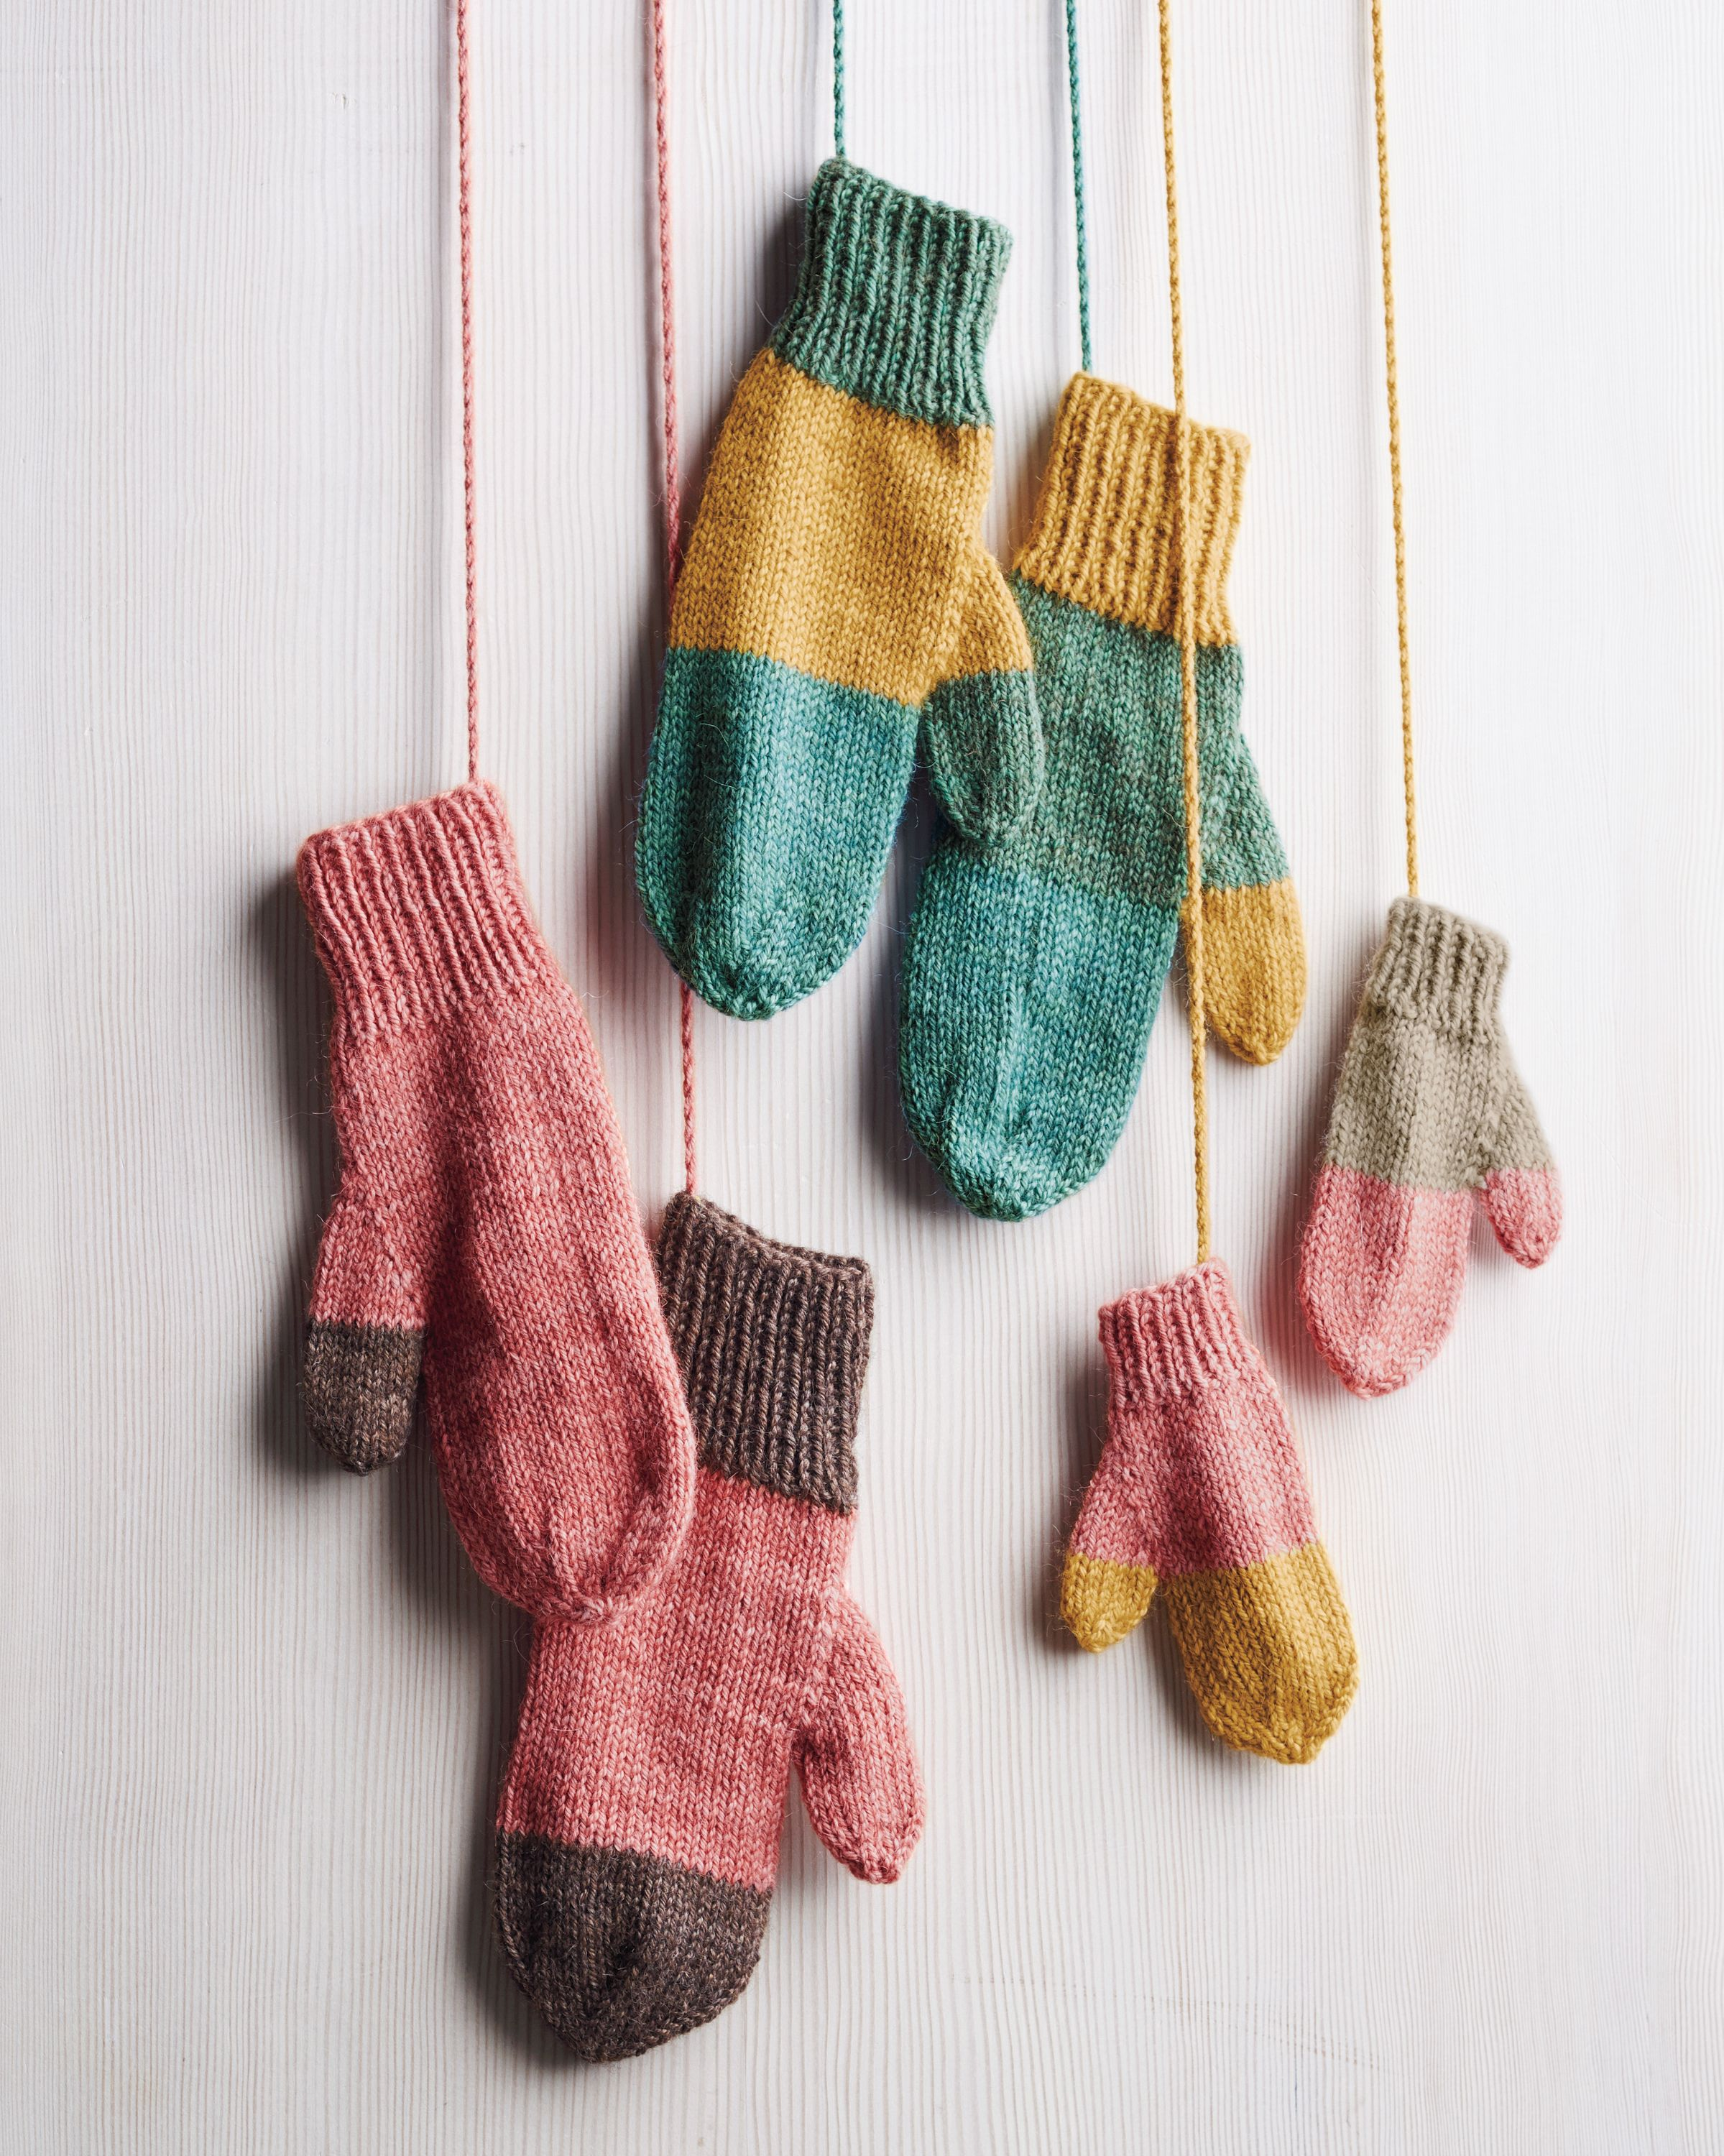 How to knit playful mittens using leftover yarn coordinating how to knit playful mittens using leftover yarn bankloansurffo Image collections